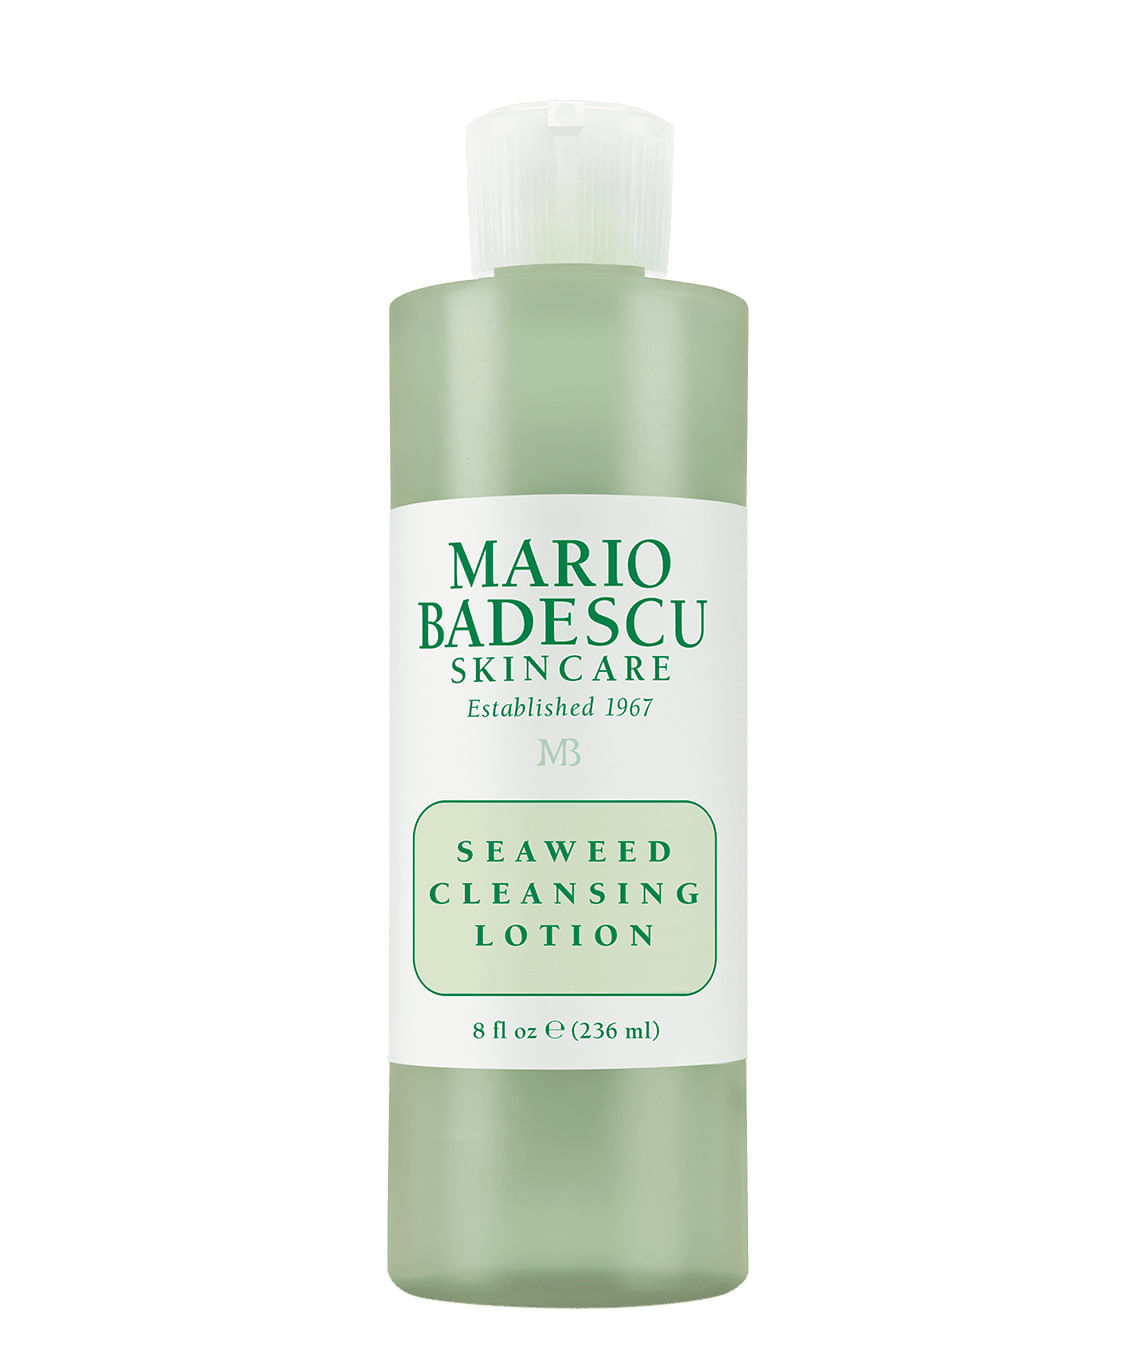 Tónico Seaweed Cleansing Lotion 236 Ml